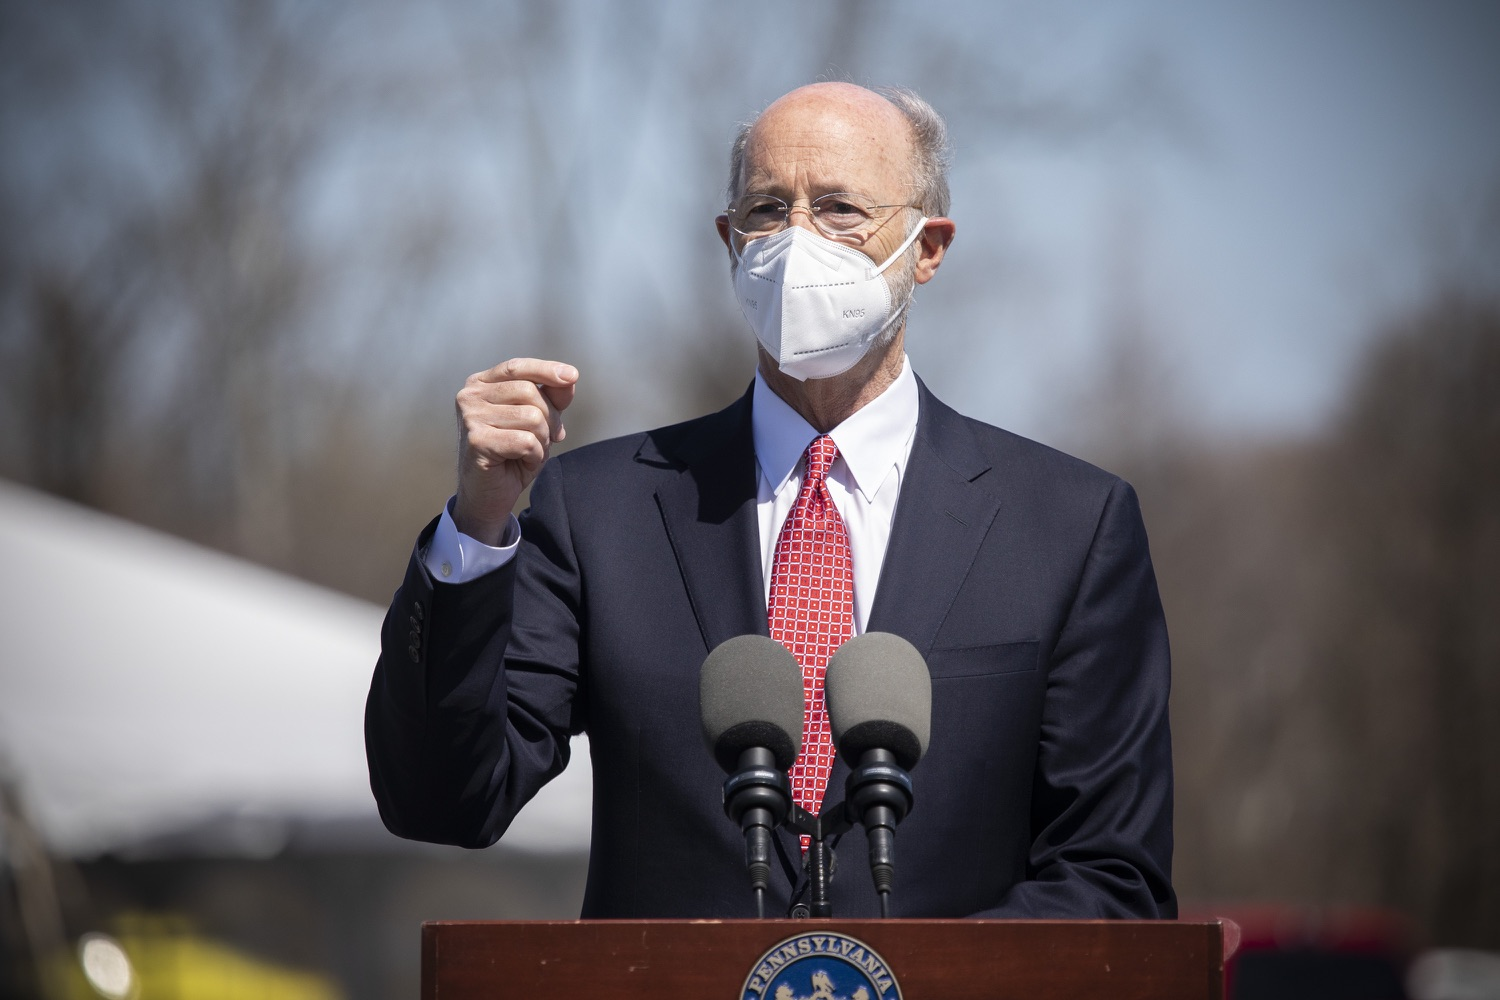 """<a href=""""https://filesource.wostreaming.net/commonwealthofpa/photo/18631_gov_hacc_vaccine_dz_002.jpg"""" target=""""_blank"""">⇣Download Photo<br></a>Pennsylvania Governor Tom Wolf speaking with the press.  Governor Wolf today visited the COVID-19 drive-thru mass vaccination clinic for Dauphin County residents at Harrisburg Area Community College. The drive-thru clinic was developed in partnership with UPMC Pinnacle and Dauphin County. He was joined by UPMC Pinnacle President Phil Guarneschelli and Dauphin County Commissioners Mike Pries and George P. Hartwick III.  HARRISBURG, PA -- March 30, 2021"""